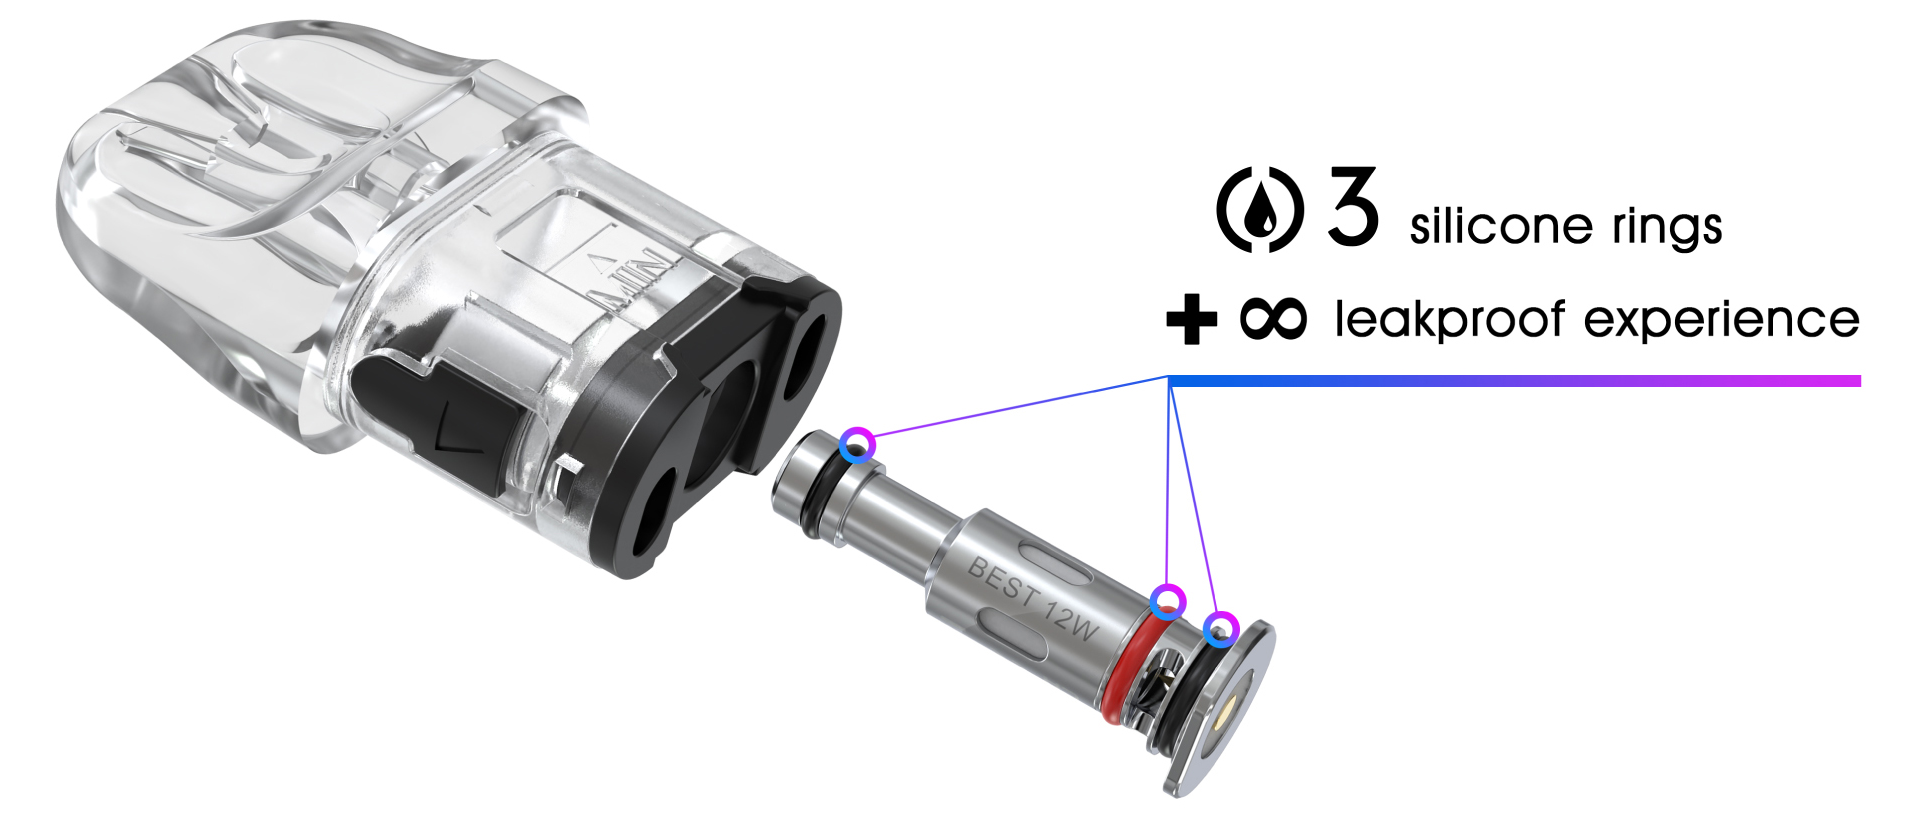 An illustration depicting a Novo 4 pod and a SMOK LP1 coil.